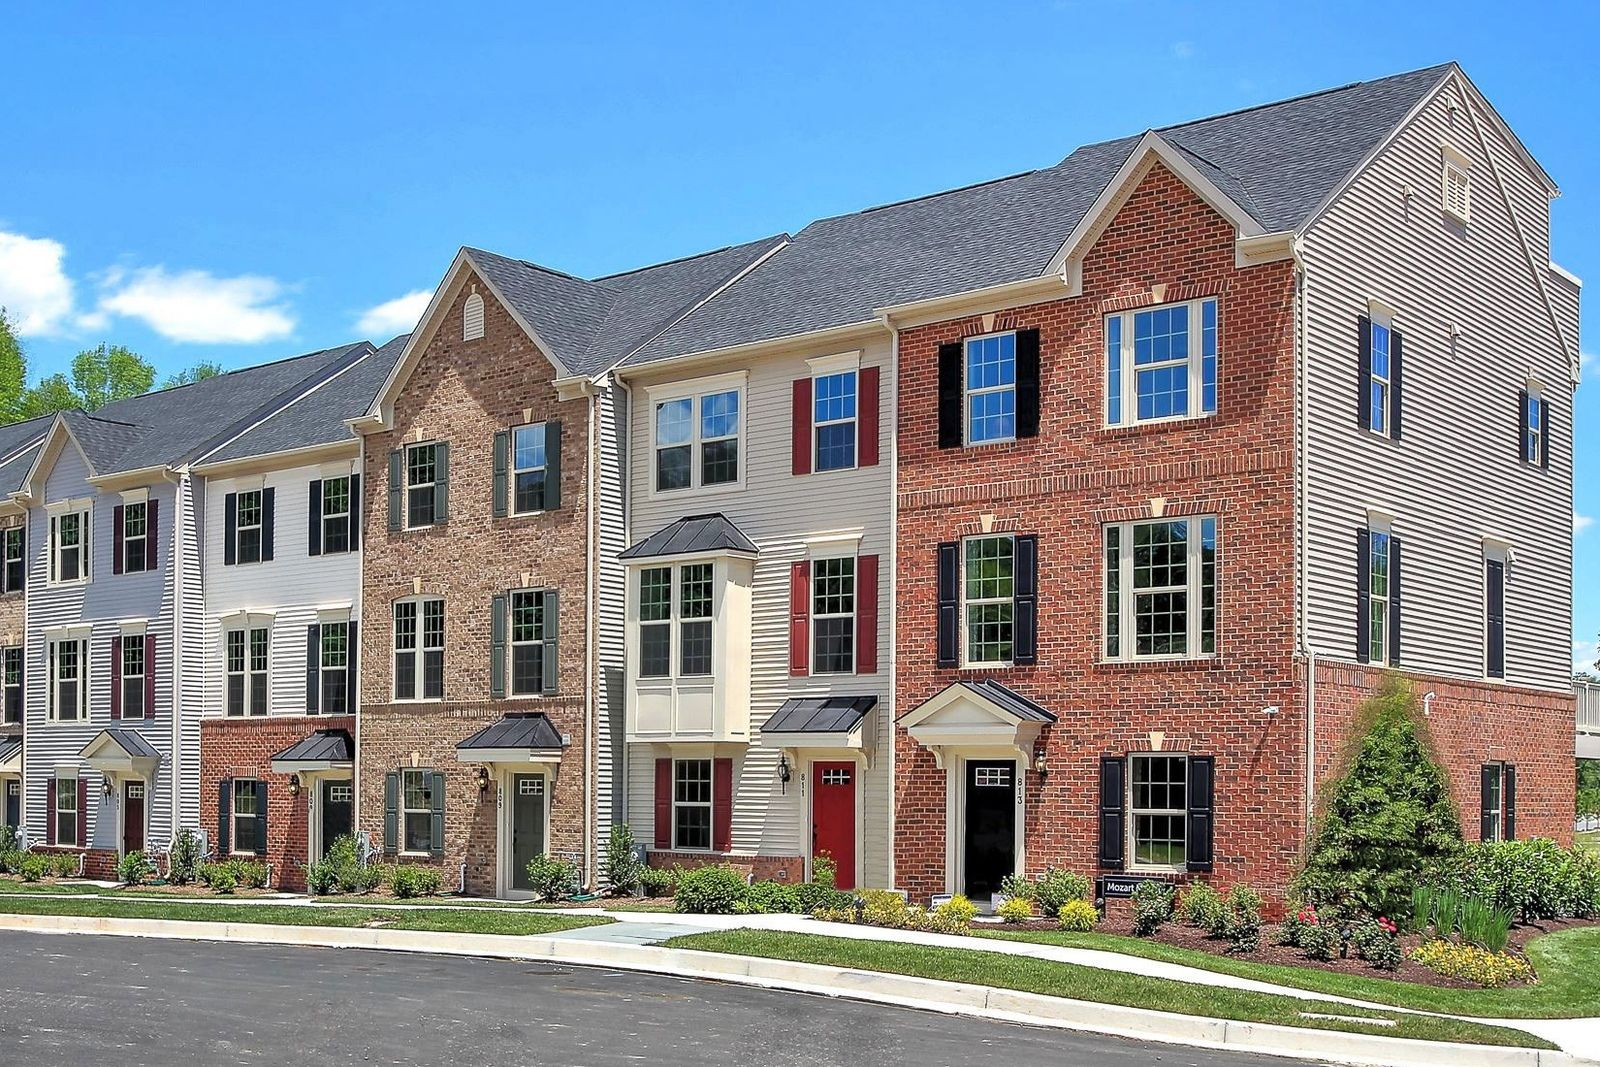 BRAND NEW TOWNHOMES ARE COMING SOON TO ARCOLA TOWN CENTER FROM THE MID $500S:Loudoun County's best value townhomes in amenity-filled Arcola Town Center - easy access to commuter routes, shops & dining! Join the VIP List today.